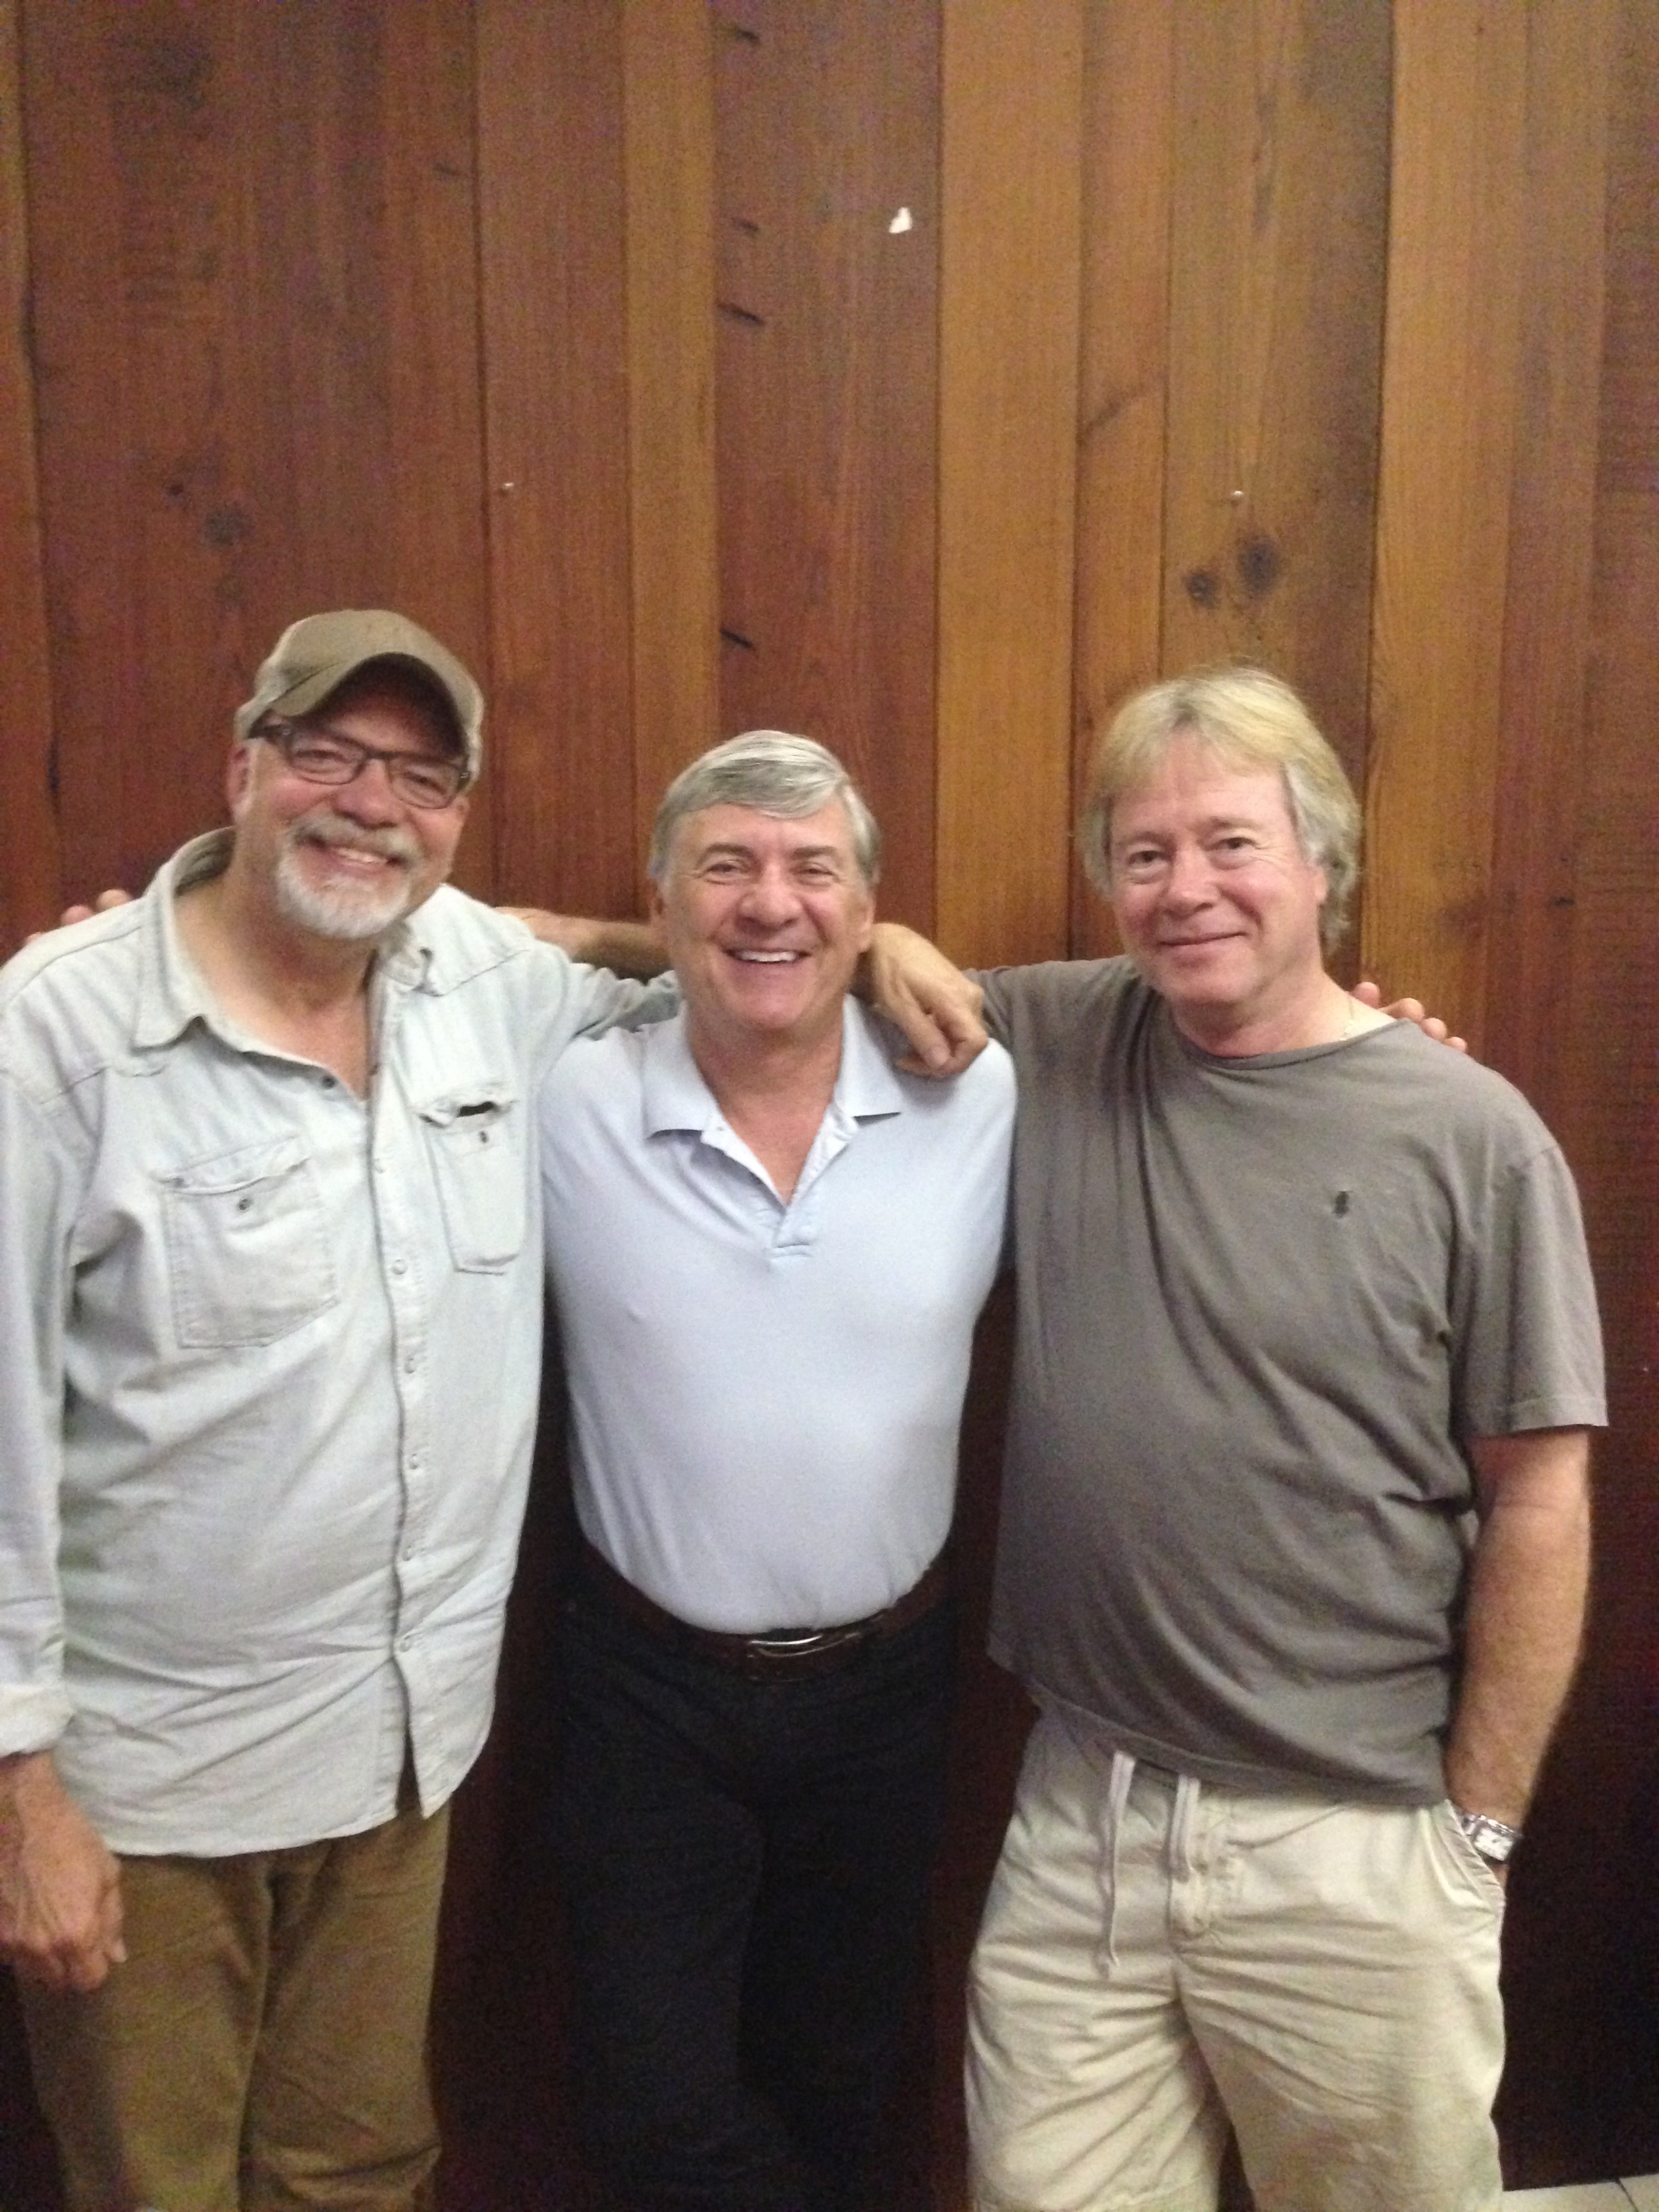 Phil Madeira, Bob & Wyatt Easterling